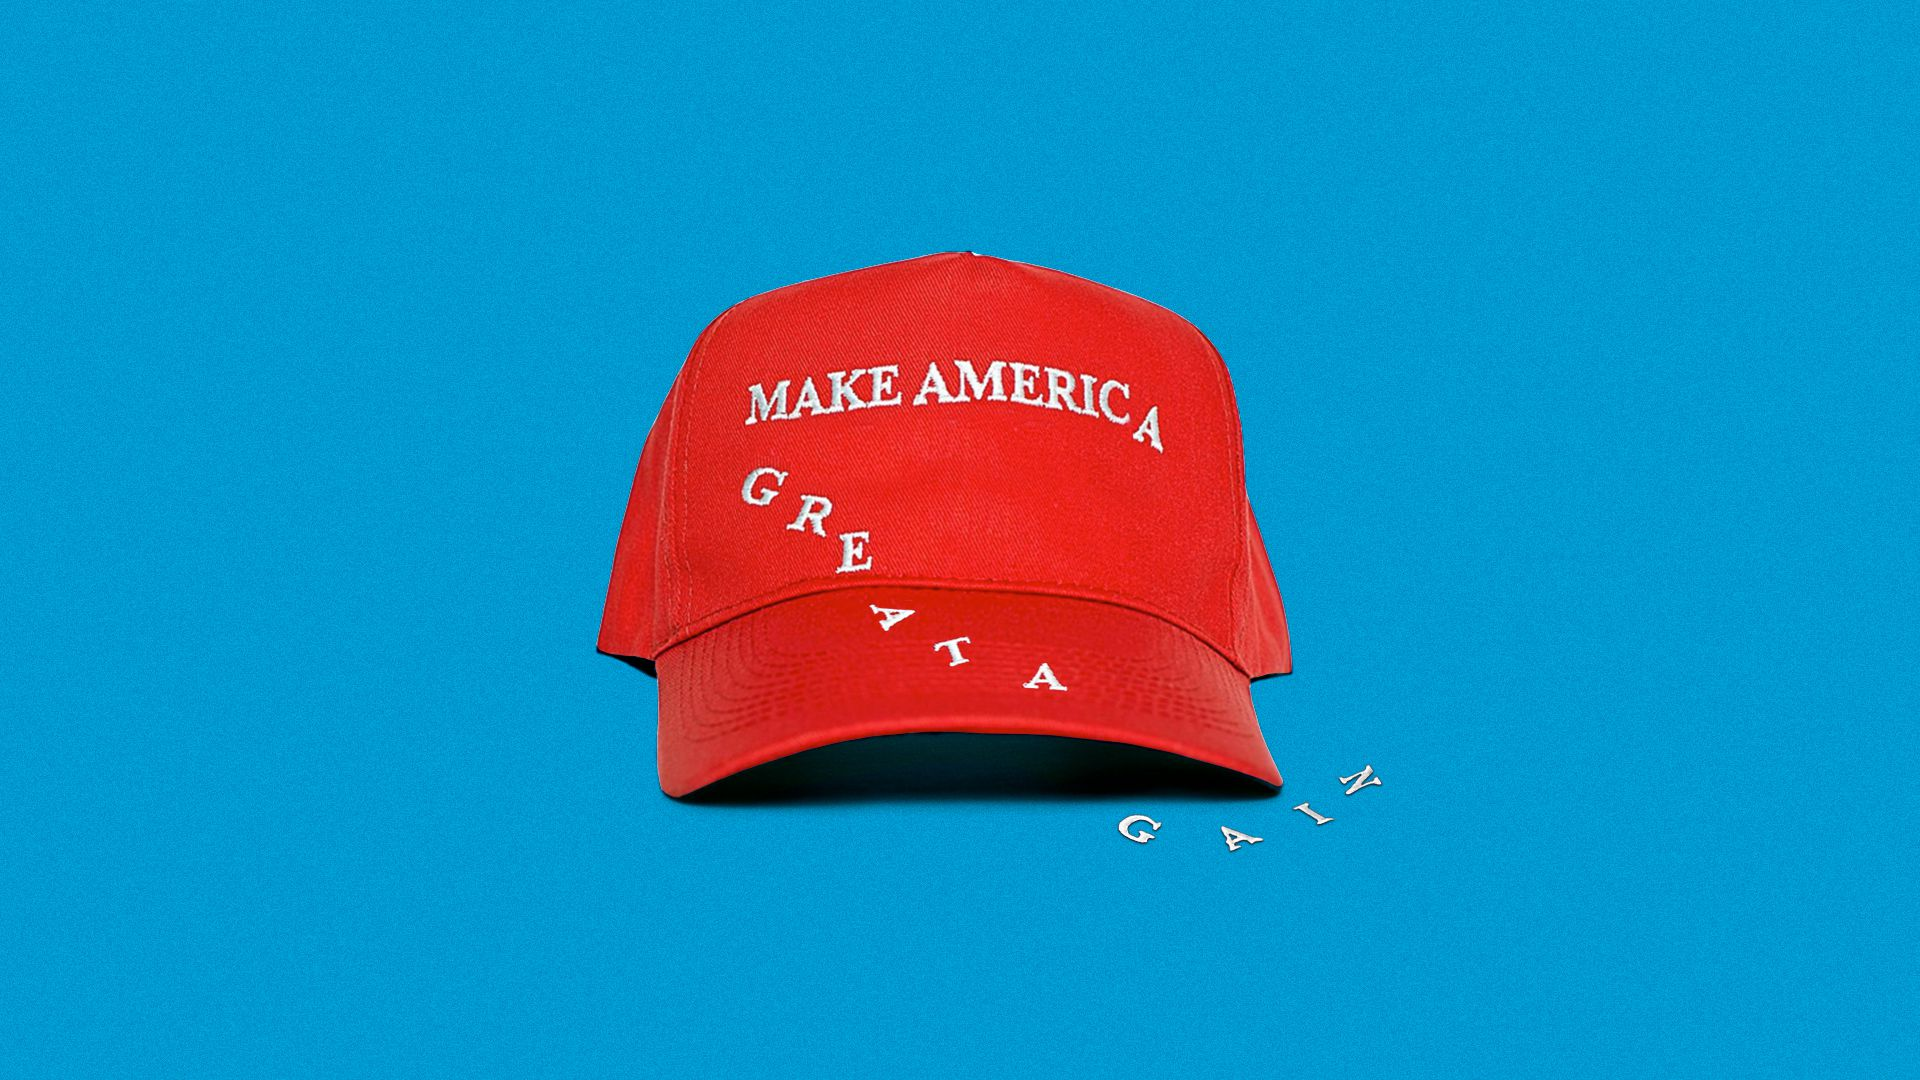 Illustration of a Make America Great Again hat with the letters falling off to the side.